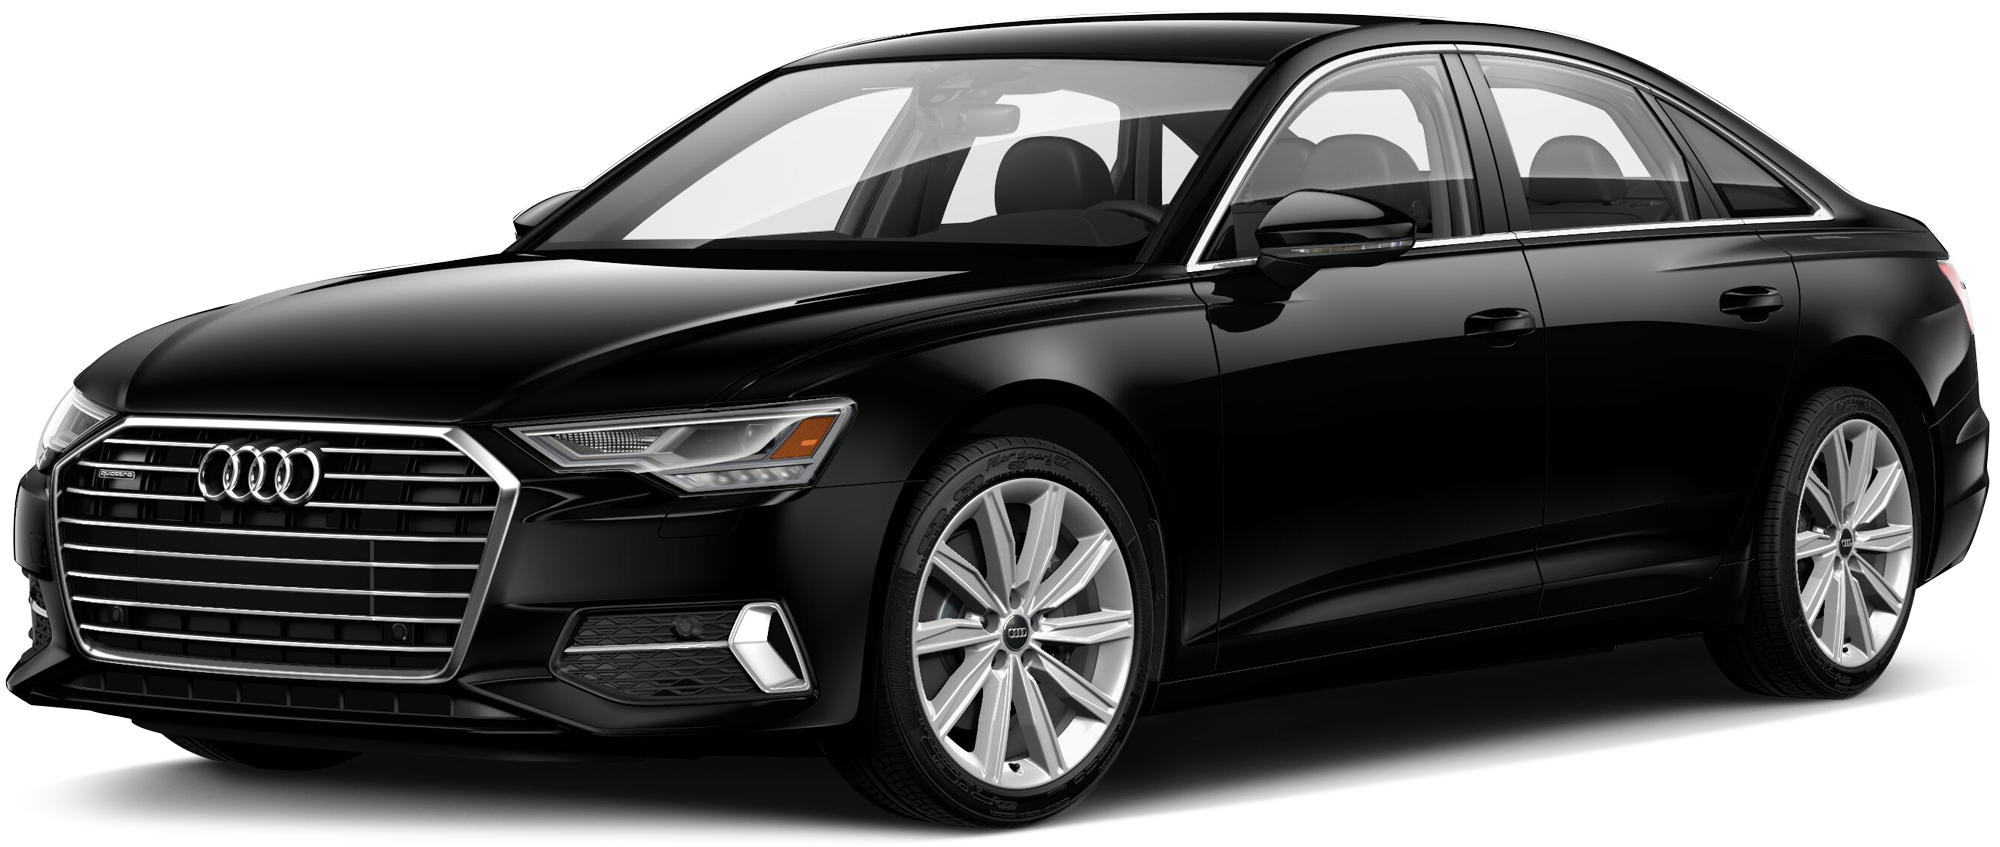 Audi A6 Lease Deal Image